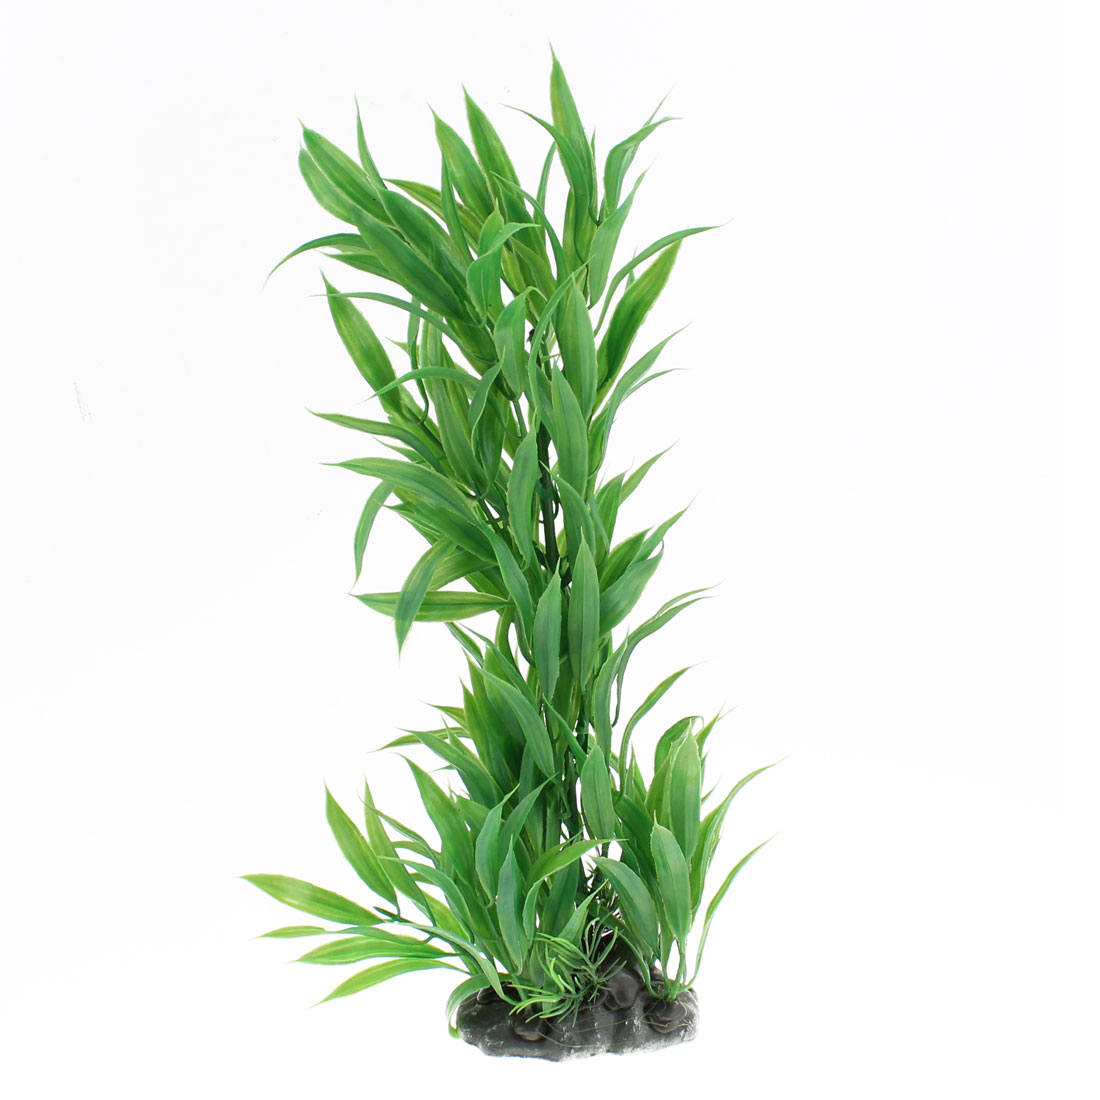 Aquarium Emulational Aquatic Grass Plant Decor 32cm Height